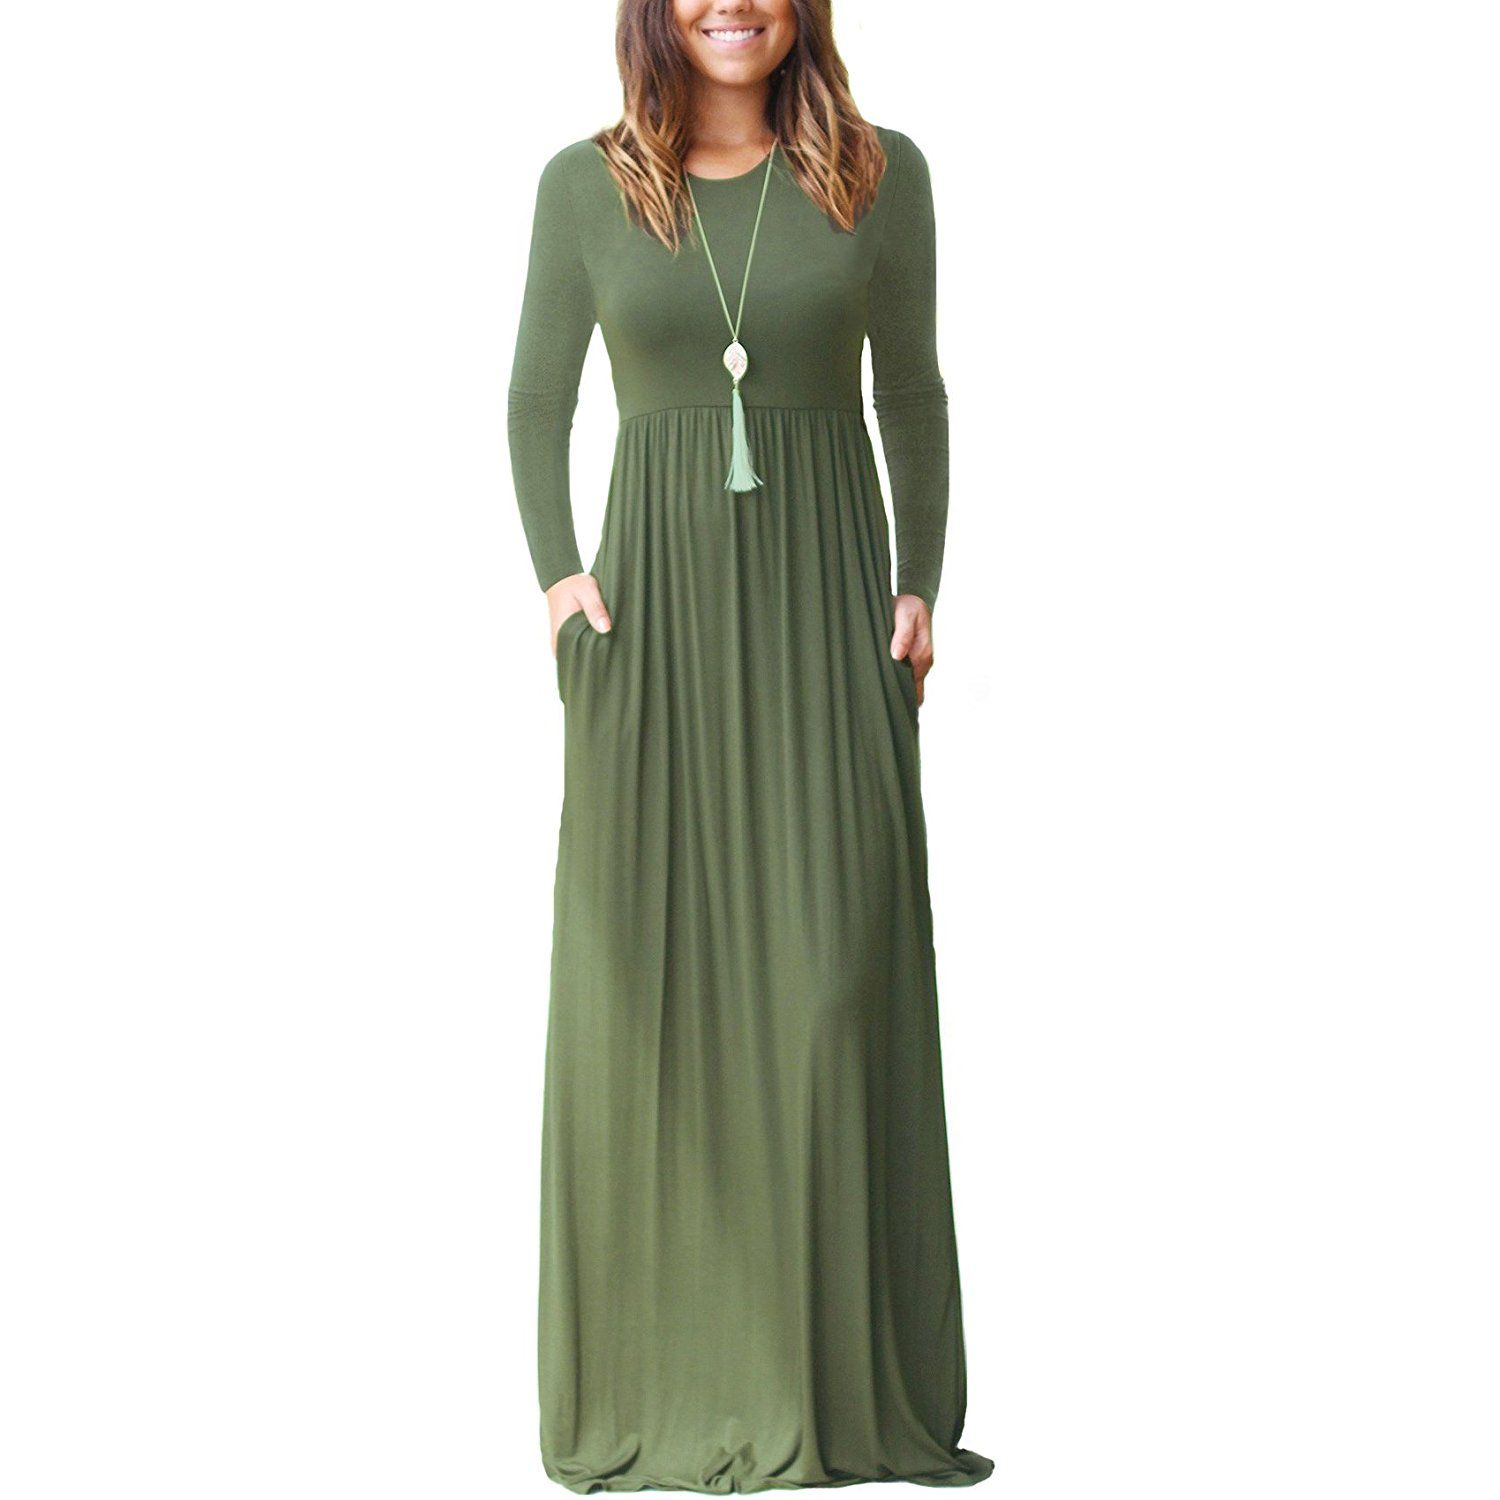 GRECERELLE Womens Long Sleeve Loose Plain Maxi Dresses Casual Long Dresses Wite Pockets